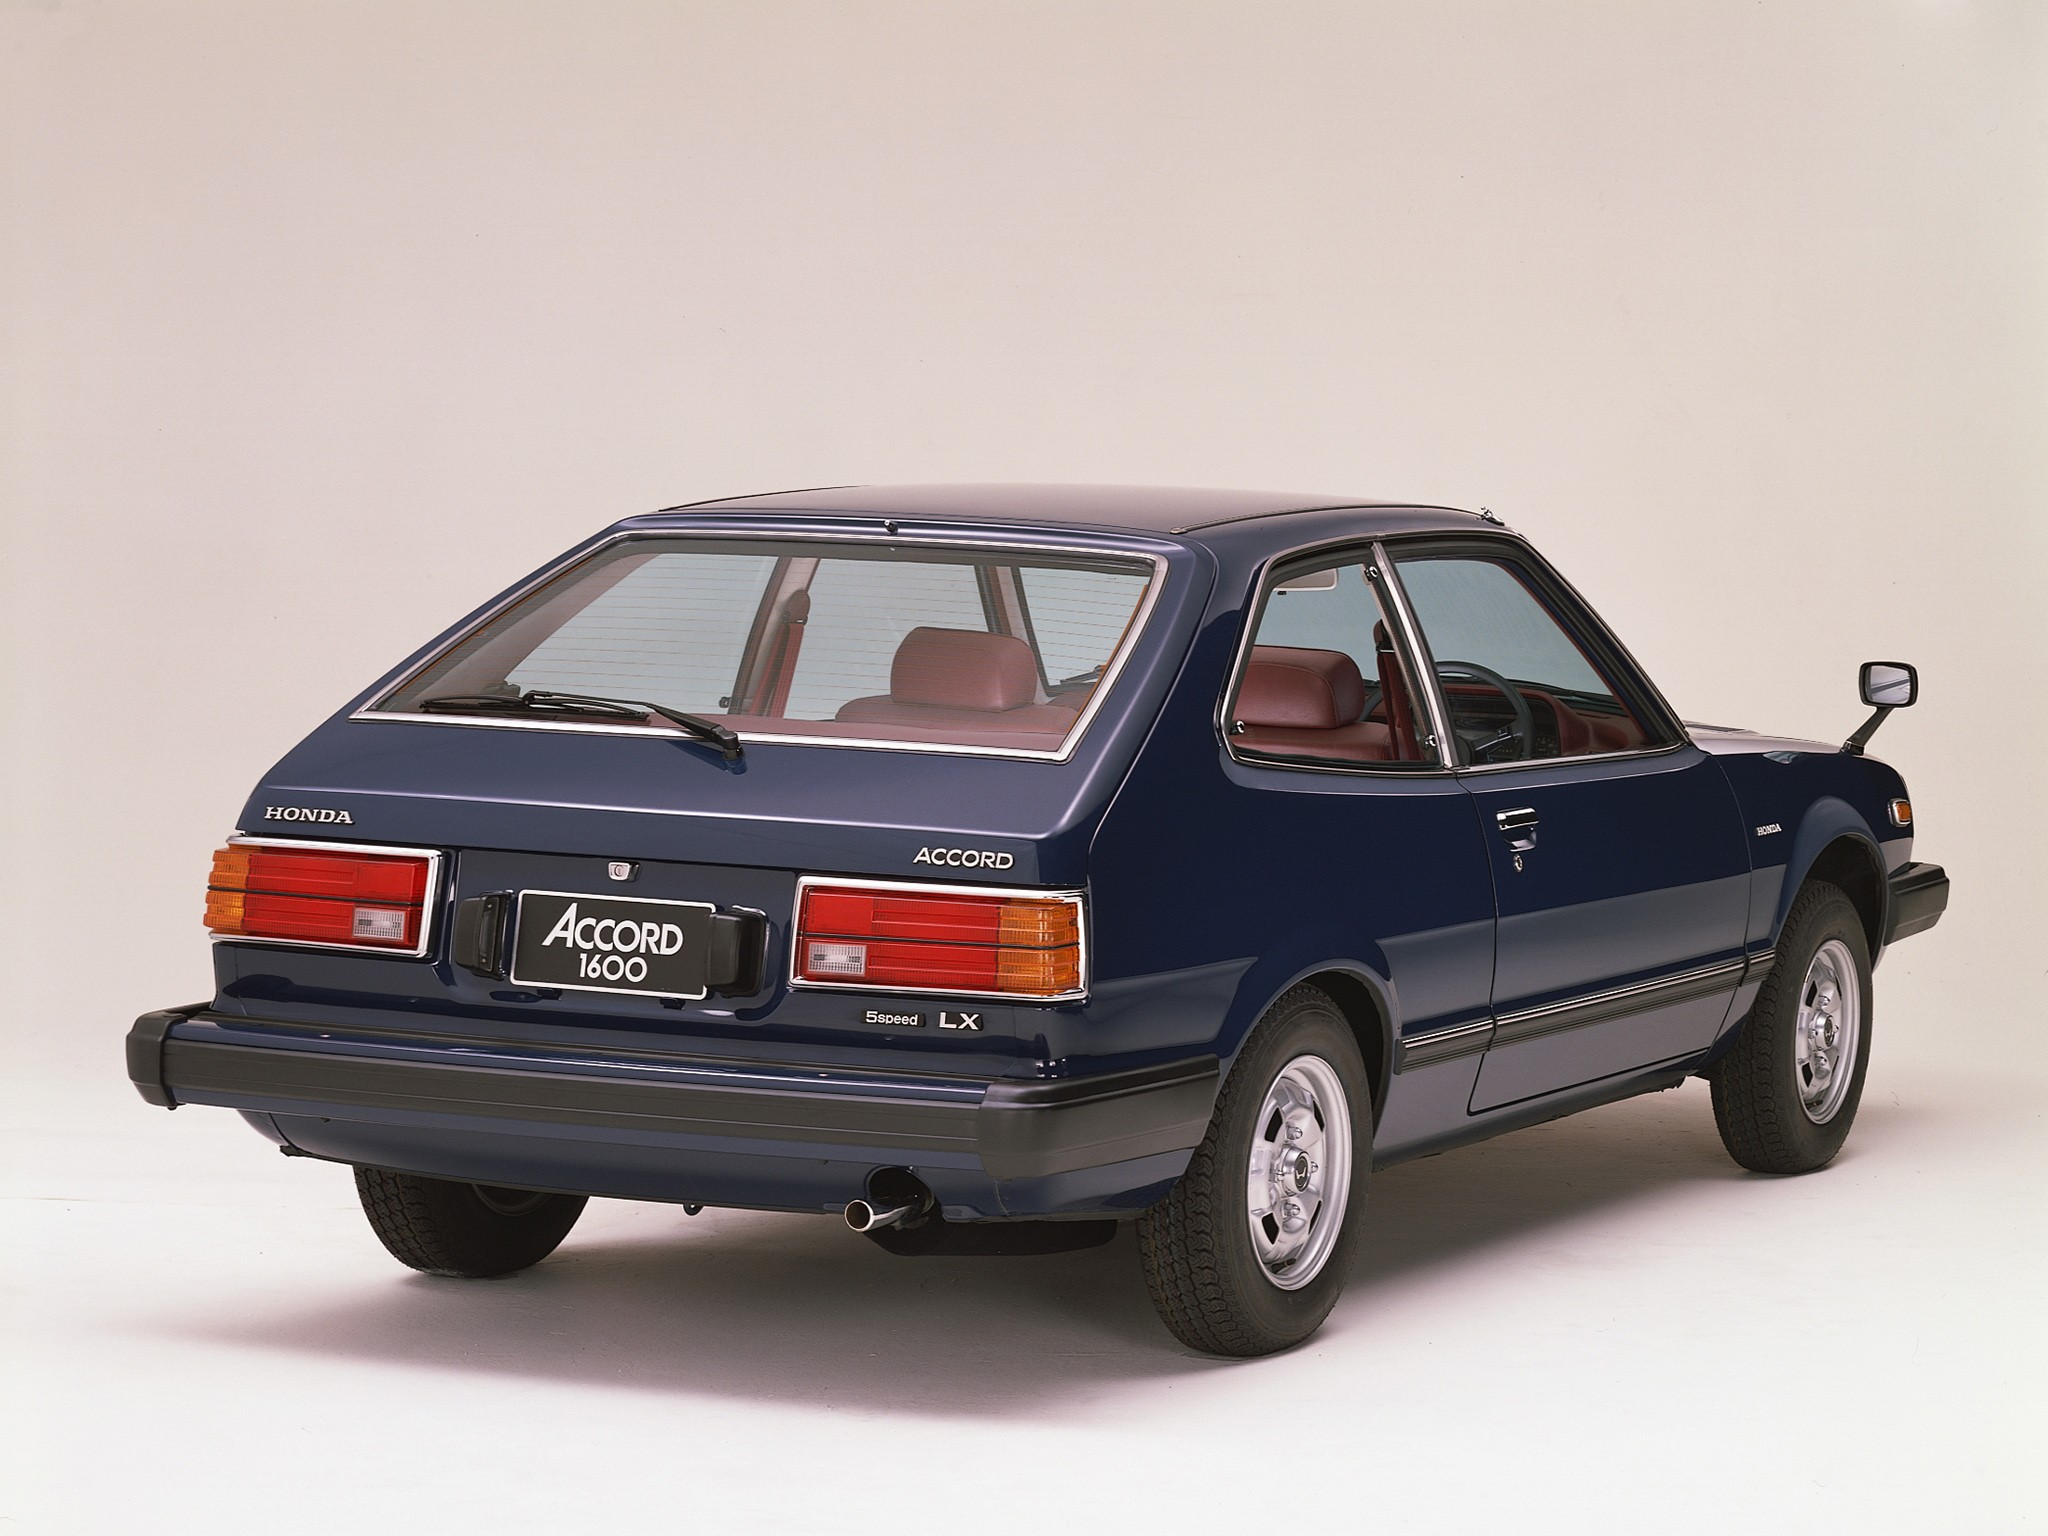 HONDA Accord 3 Doors specs & photos - 1976, 1977, 1978 ...